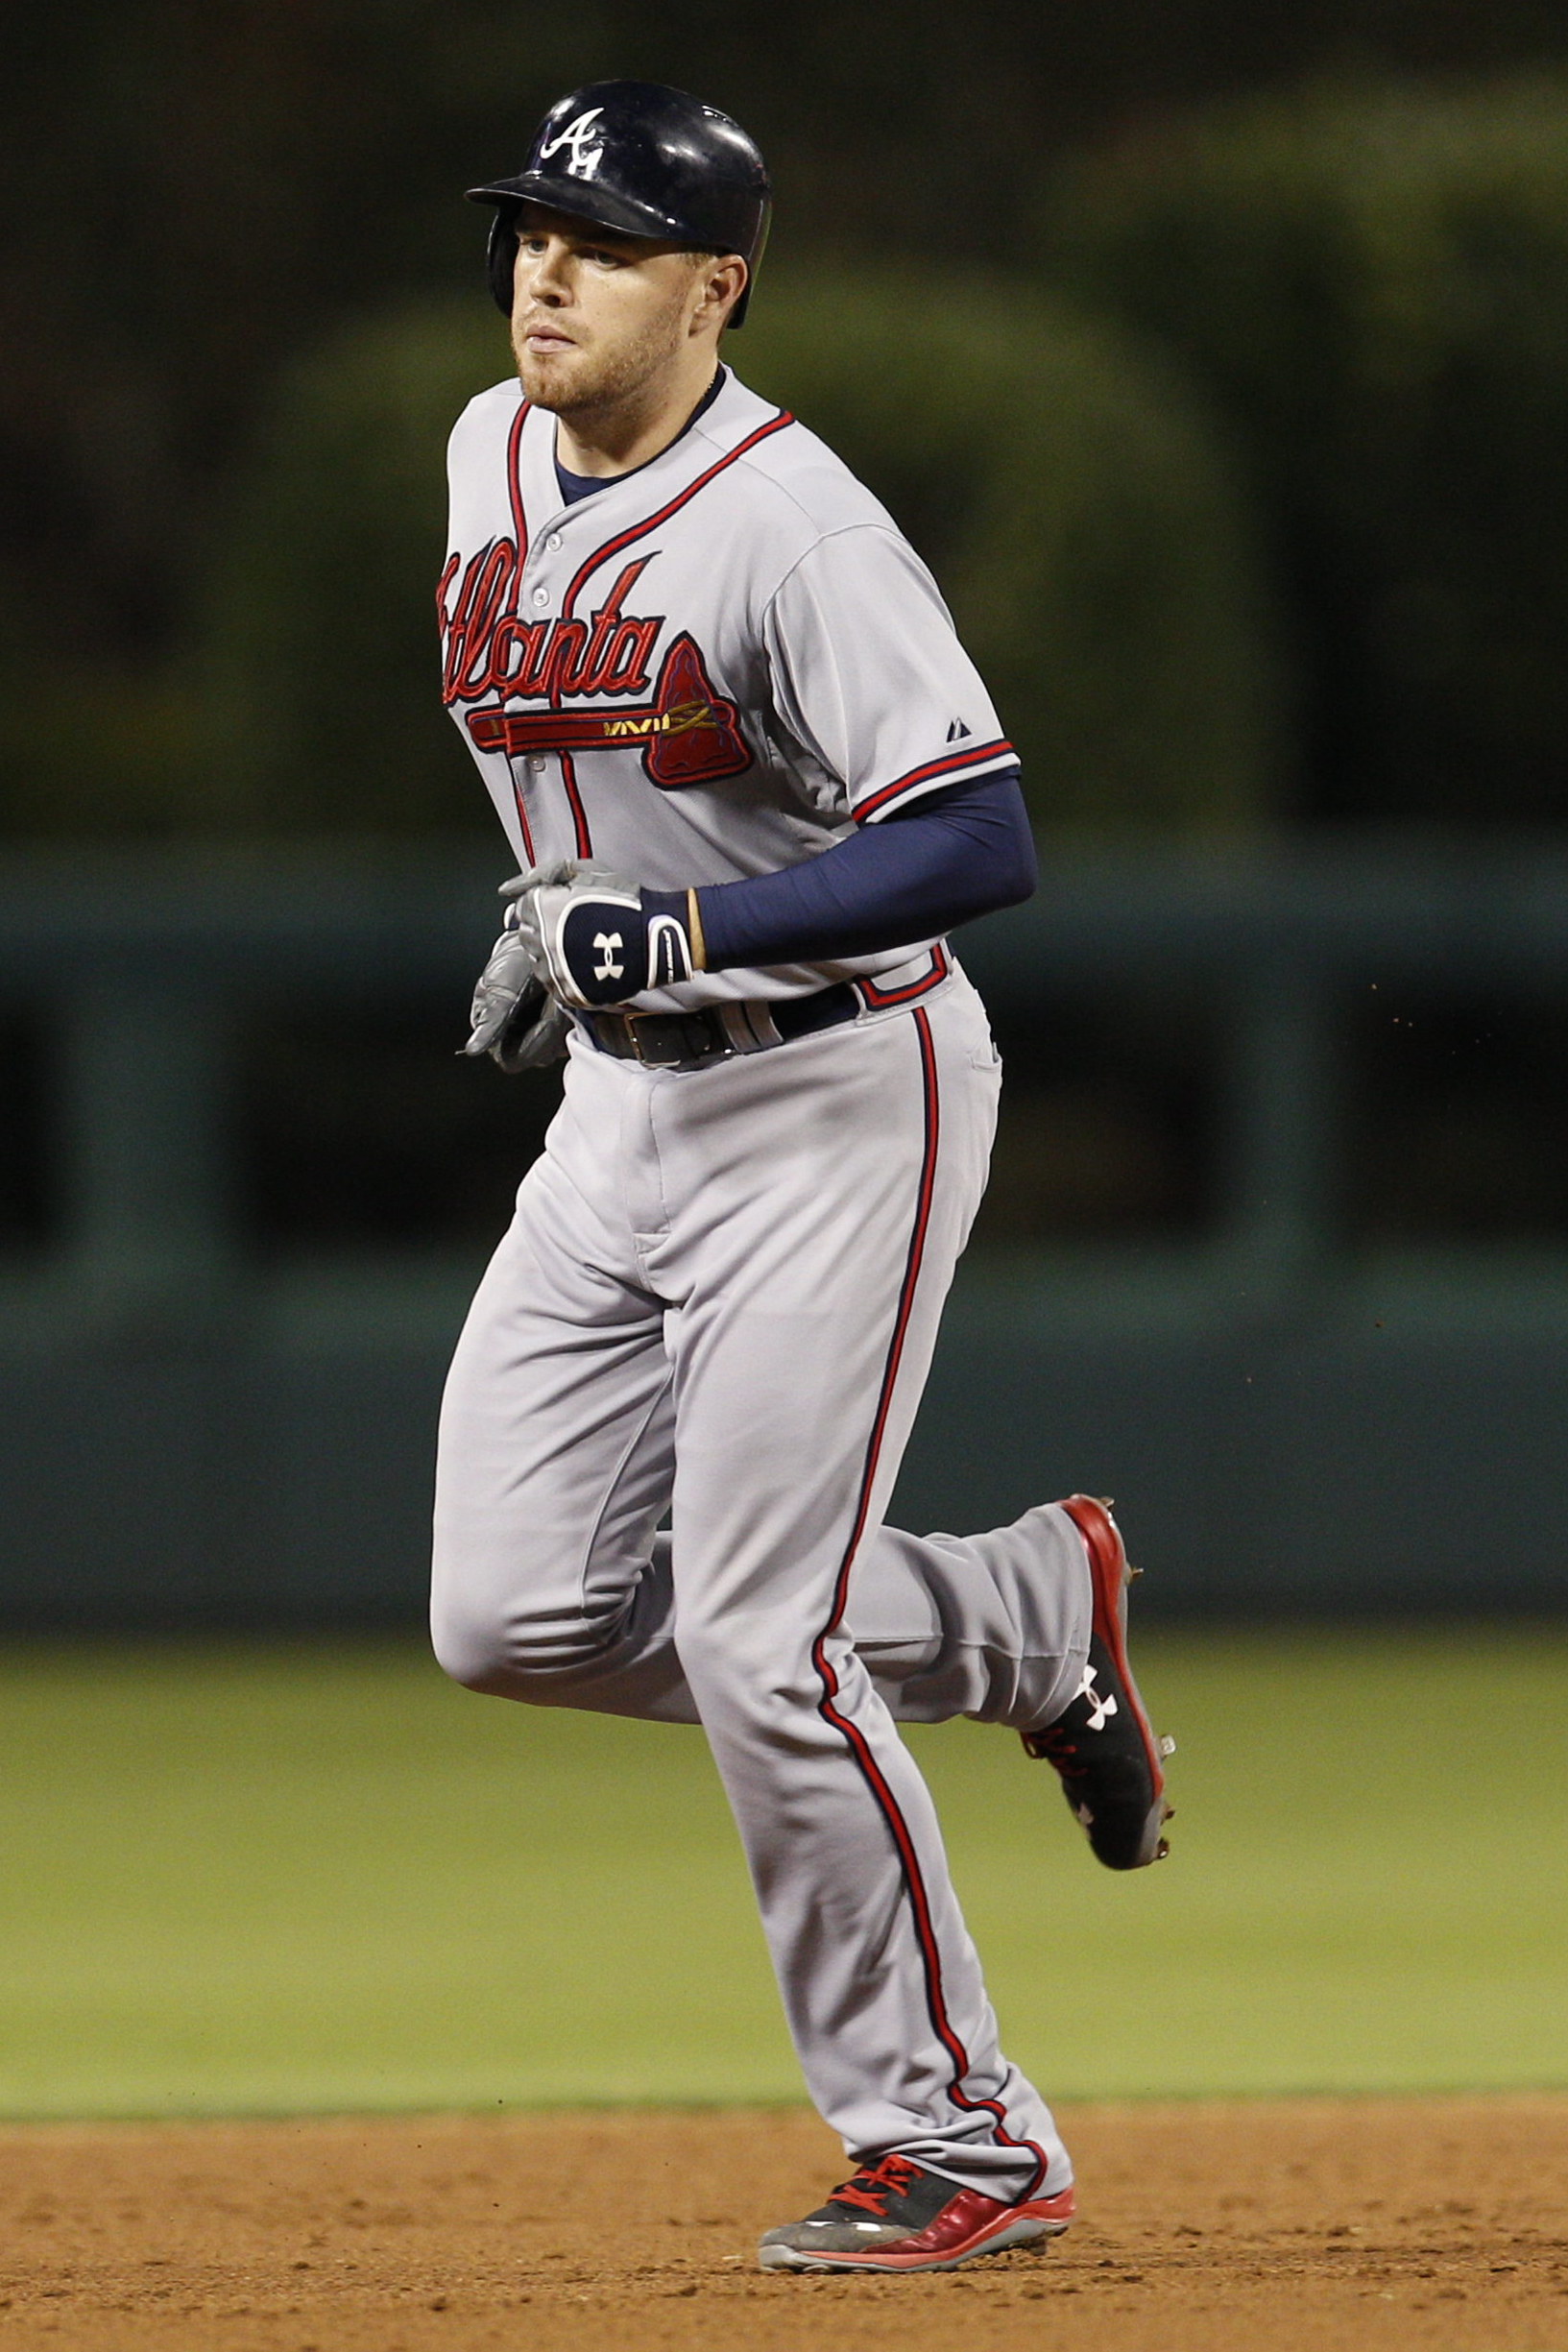 Atlanta Braves' Freddie Freeman rounds the bases after hitting a two run home run during the eighth inning of a baseball game against the Philadelphia Phillies, Friday, July 31, 2015, in Philadelphia. The Phillies won 9-3. (AP Photo/Chris Szagola)